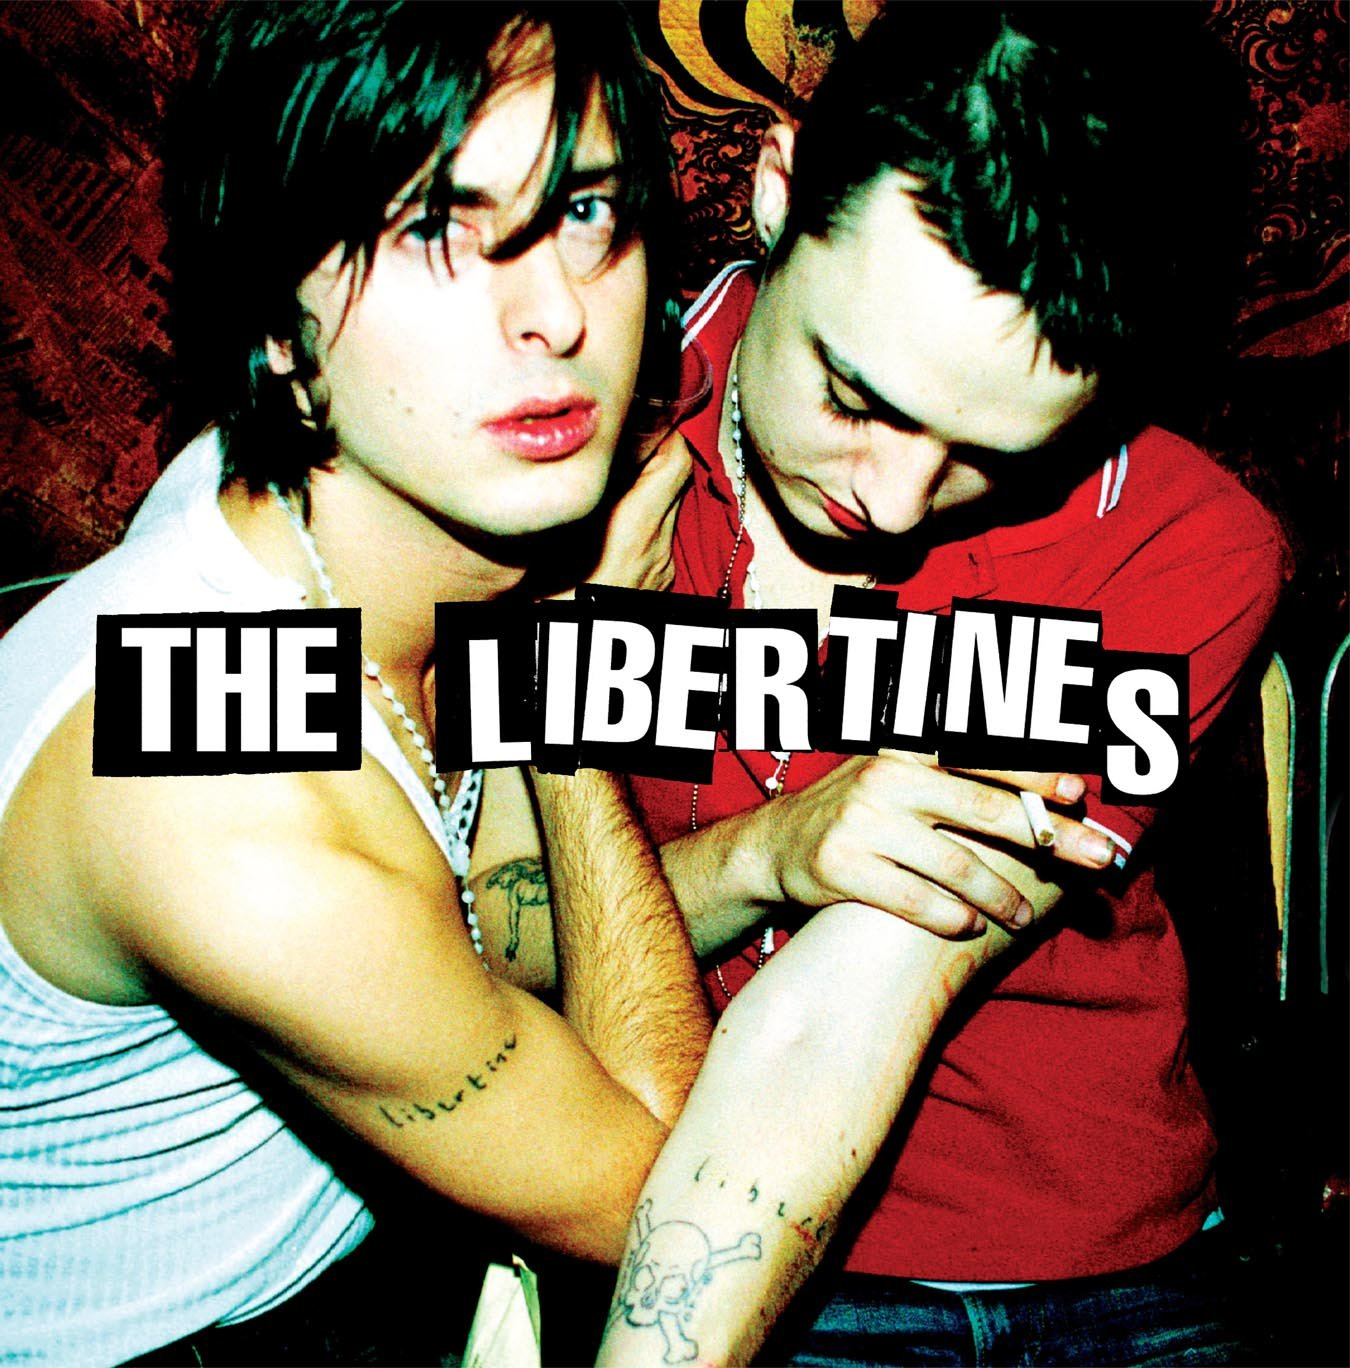 The Libertines [Vinyl] by Rough Trade Us